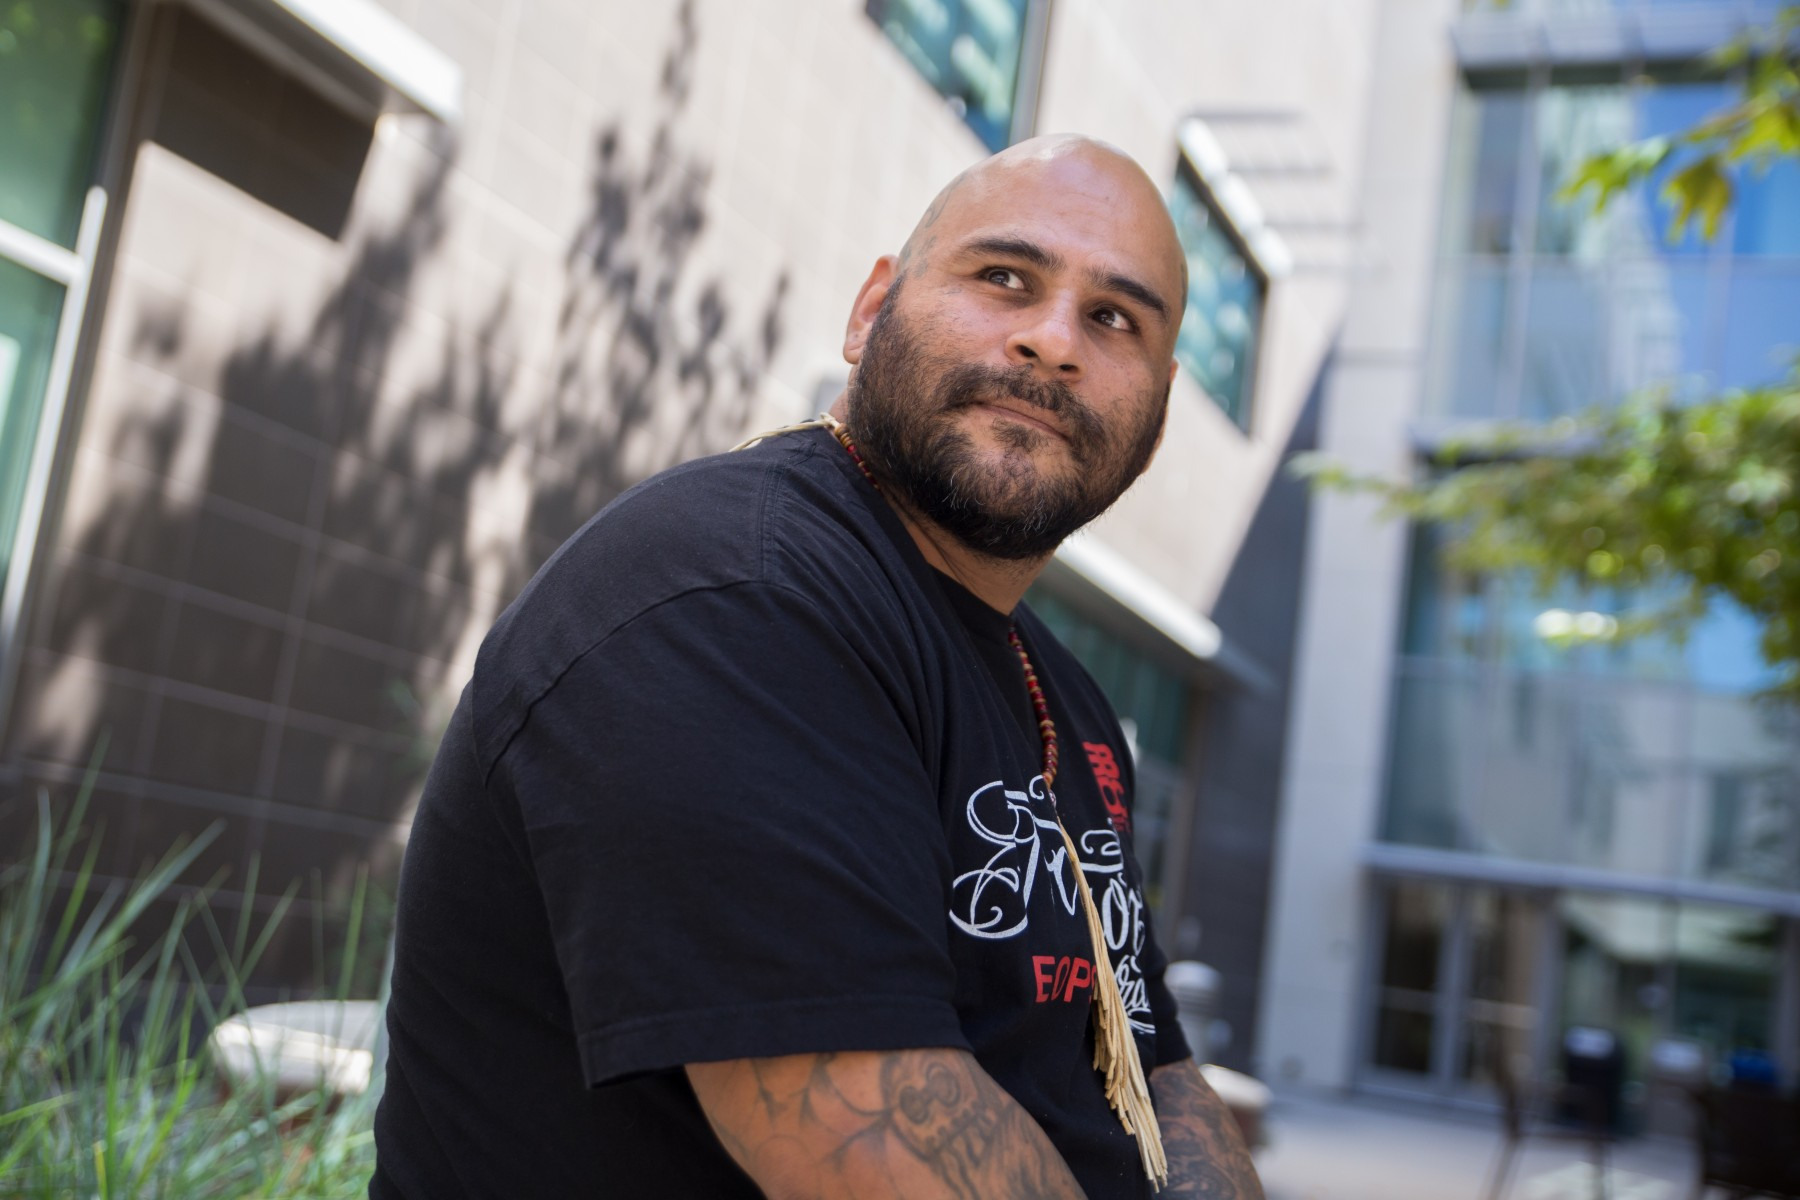 CSUSM alumnus Martín Leyva is the director of the university's new chapter of Project Rebound, which launches this fall. Photo by Christine Vaughan